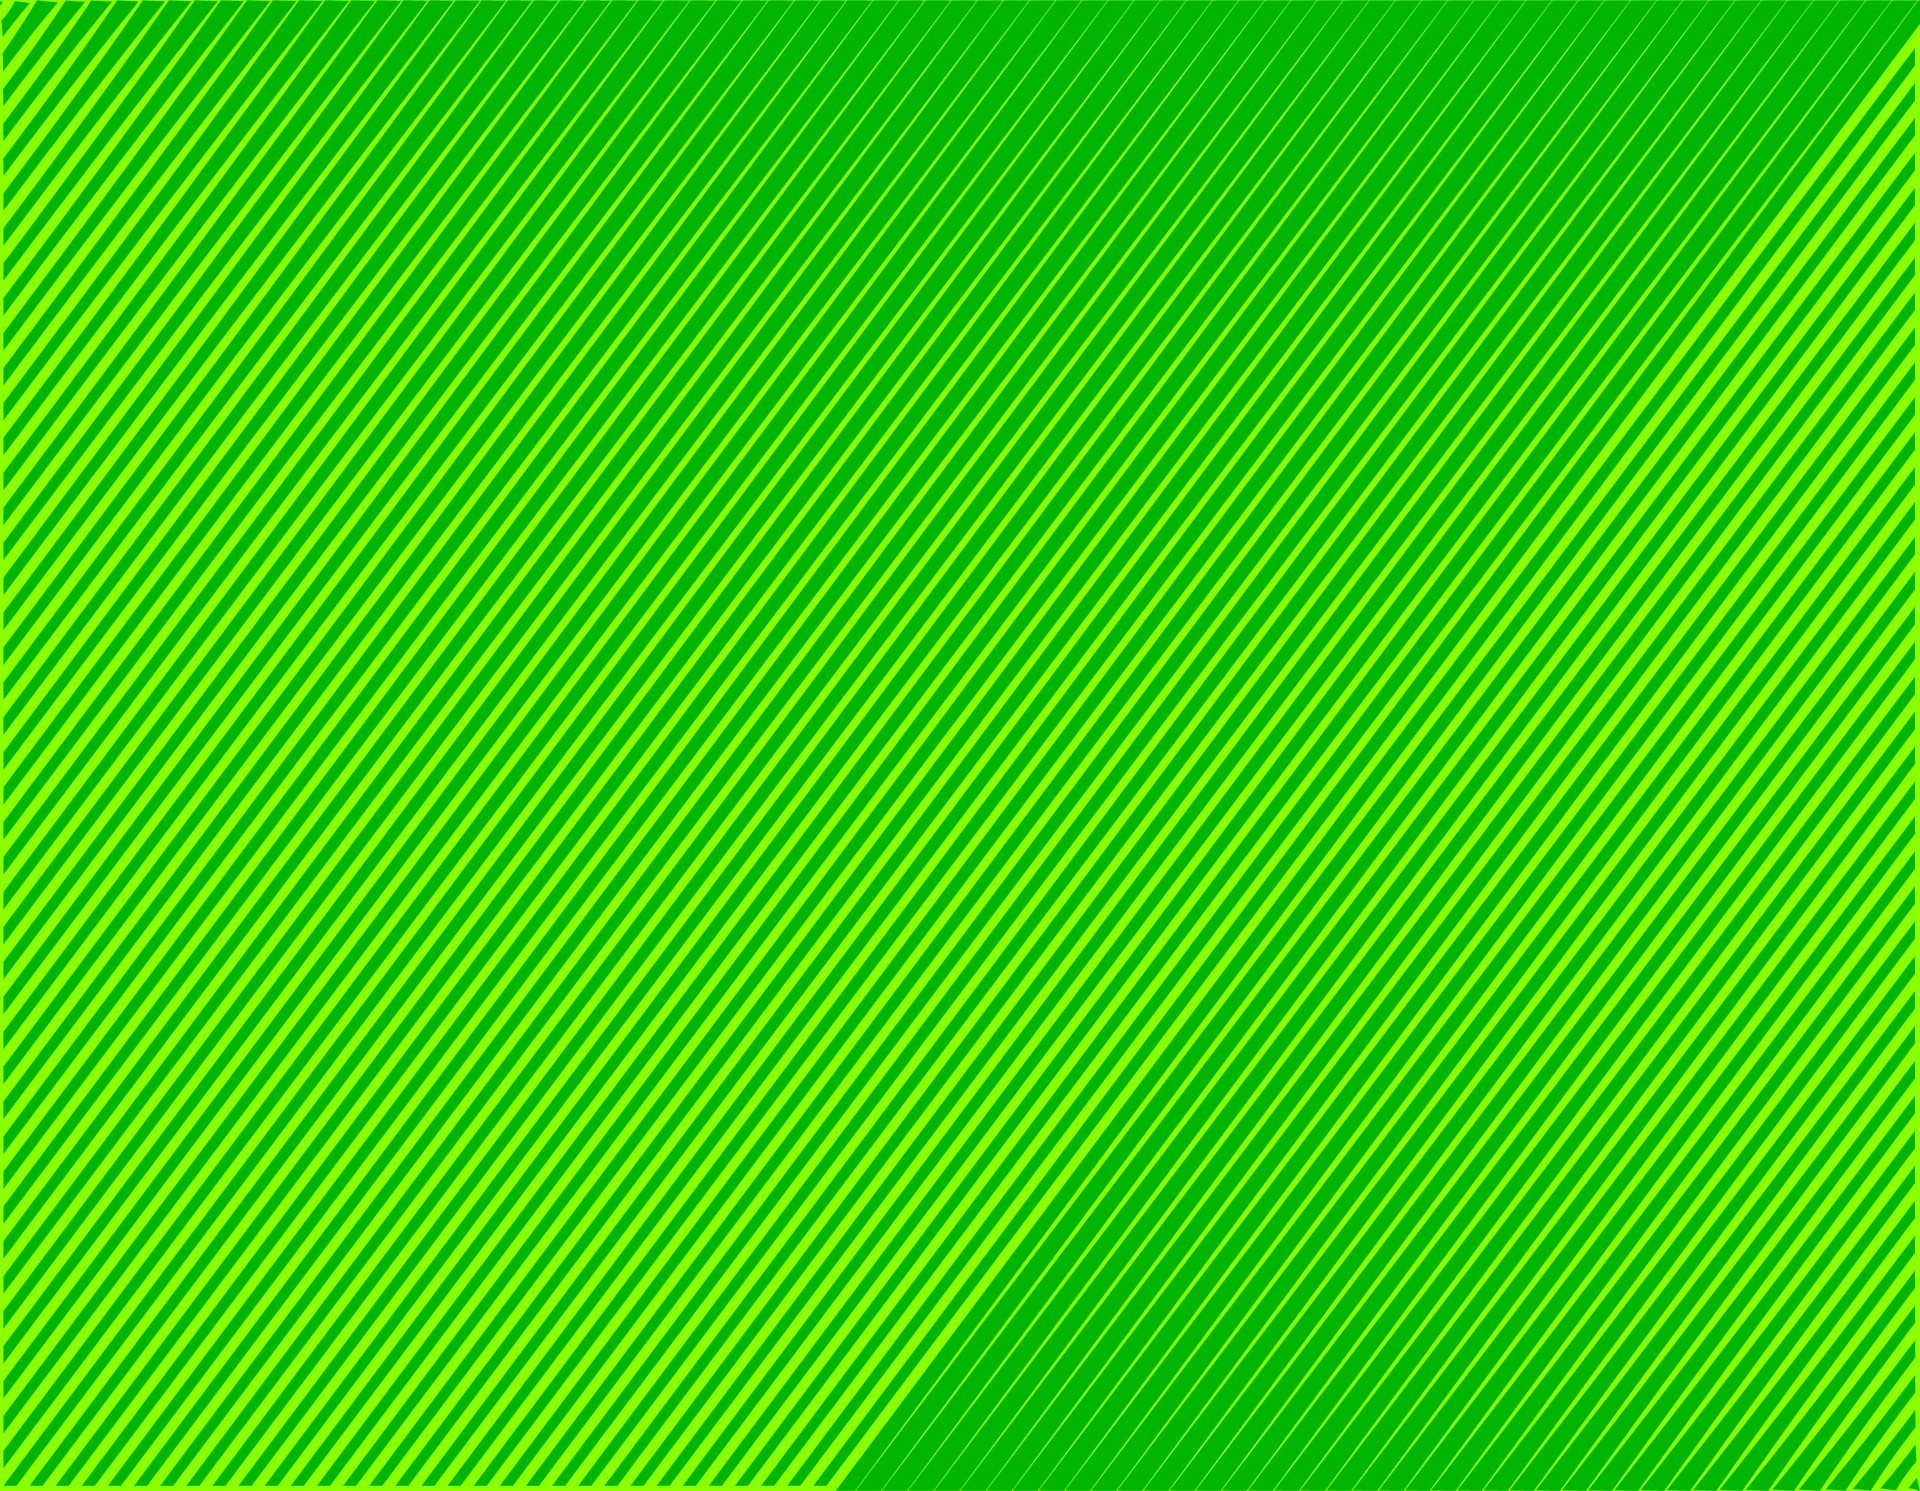 1920x1491 Green Background